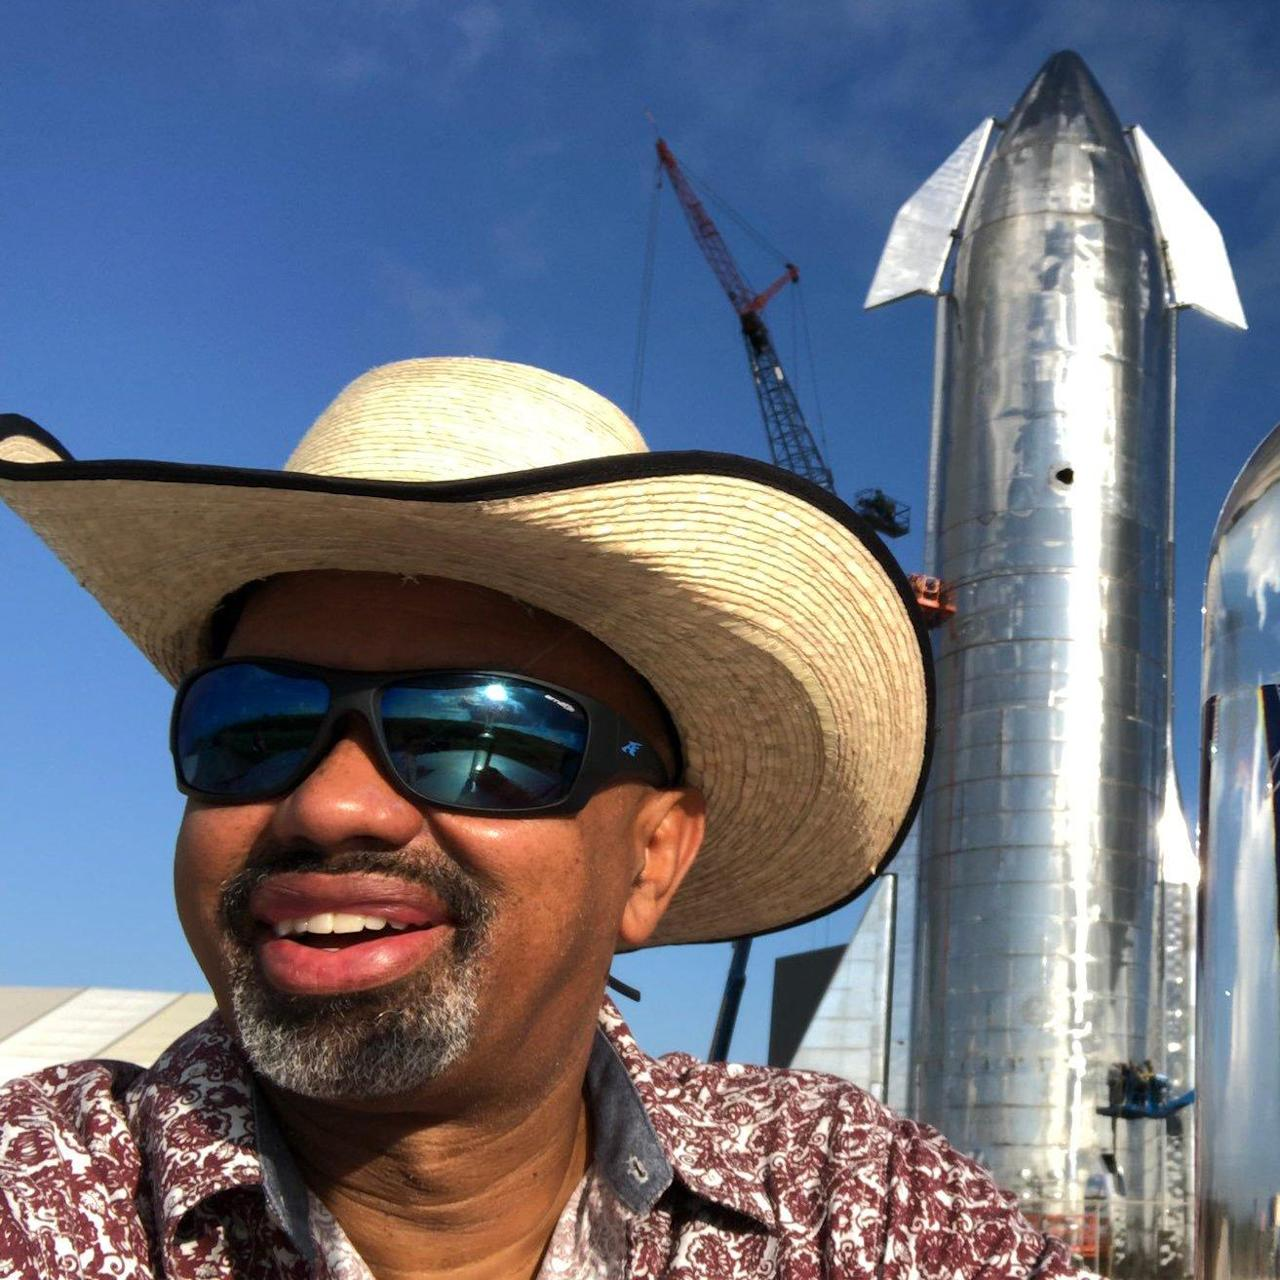 A SpaceX fan who visited Texas to see Elon Musk's Starship event spent the night in jail after taking photos of a rocket prototype built by the company